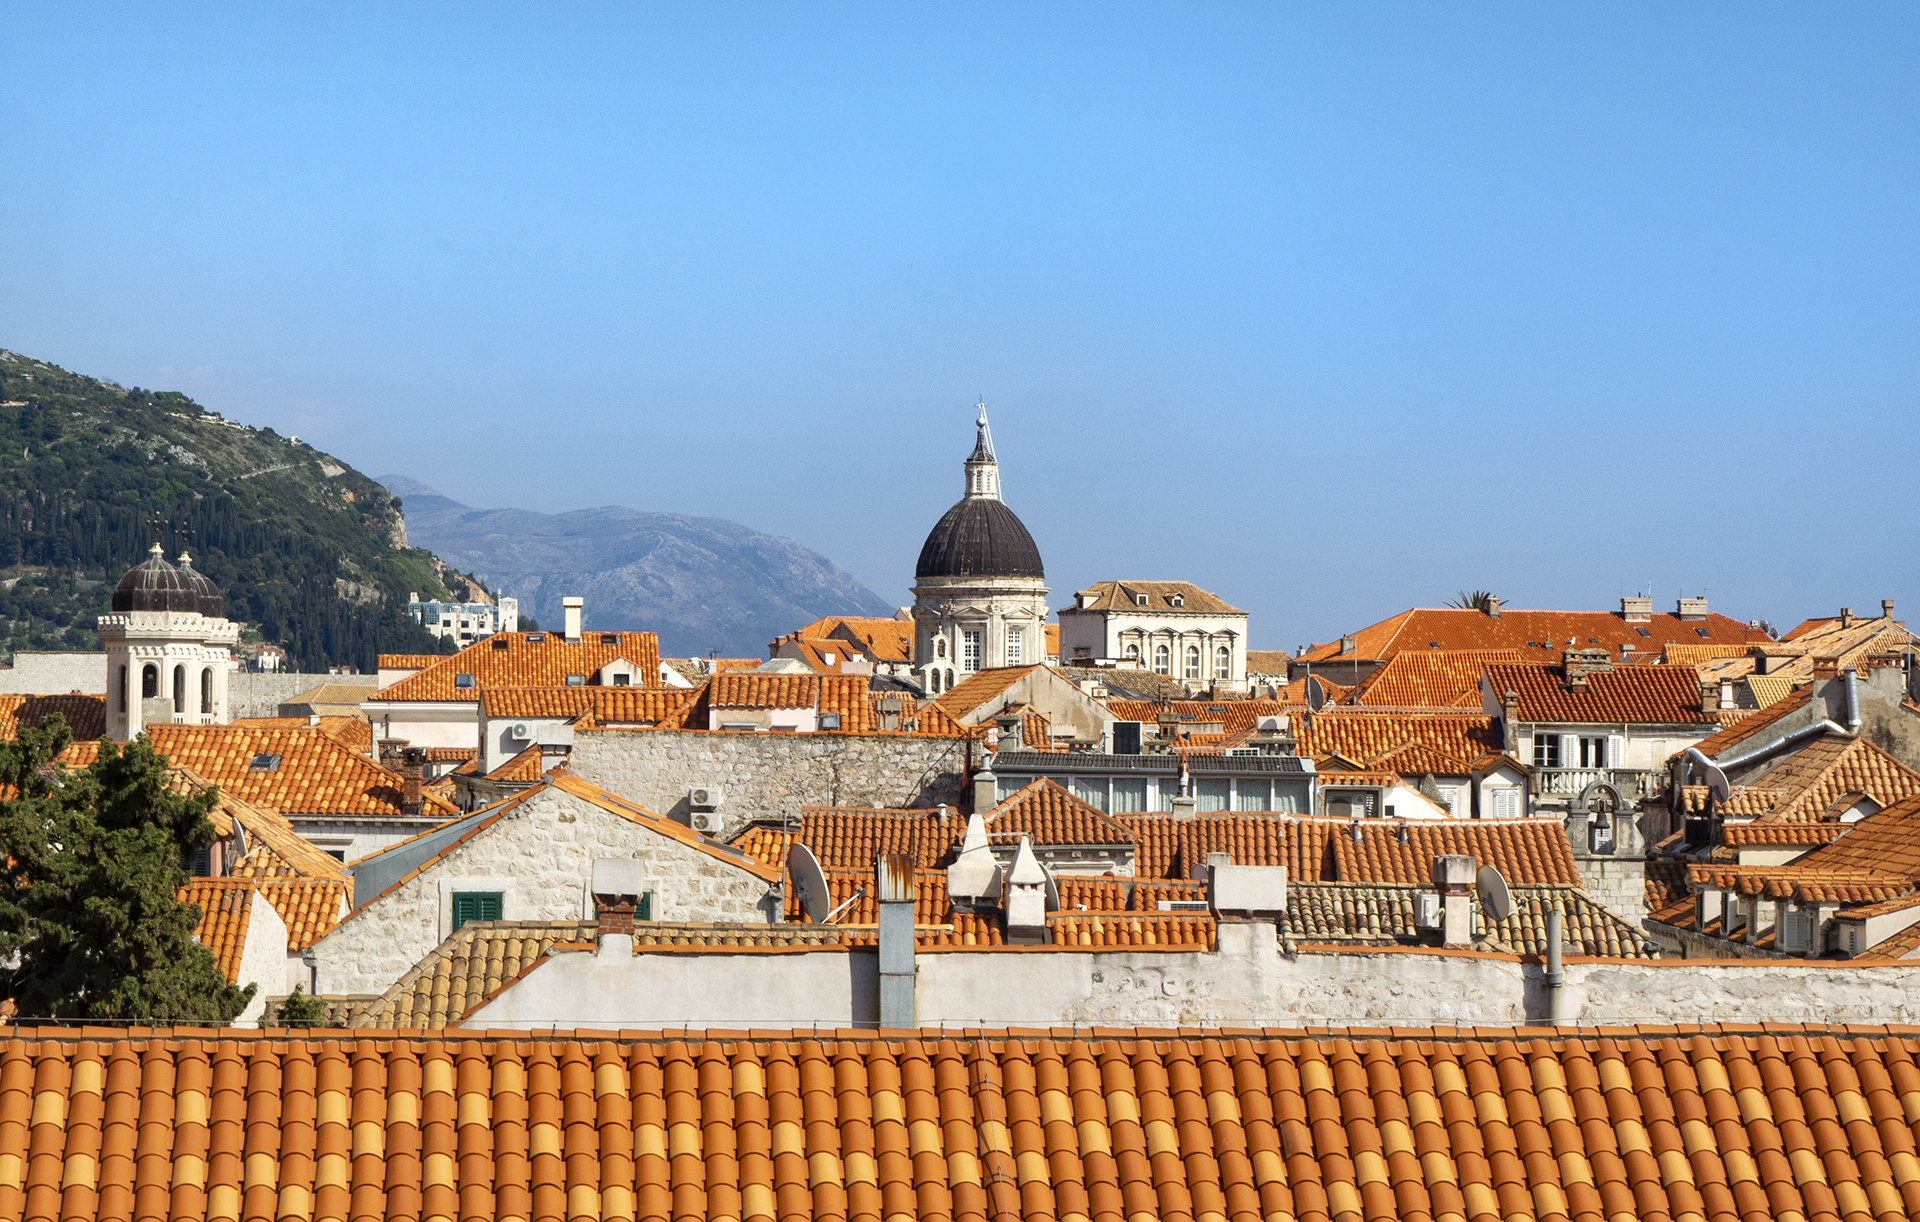 Solo travel and explore the magnificent walled city of Dubrovnik is one of the treasures of Croatia.